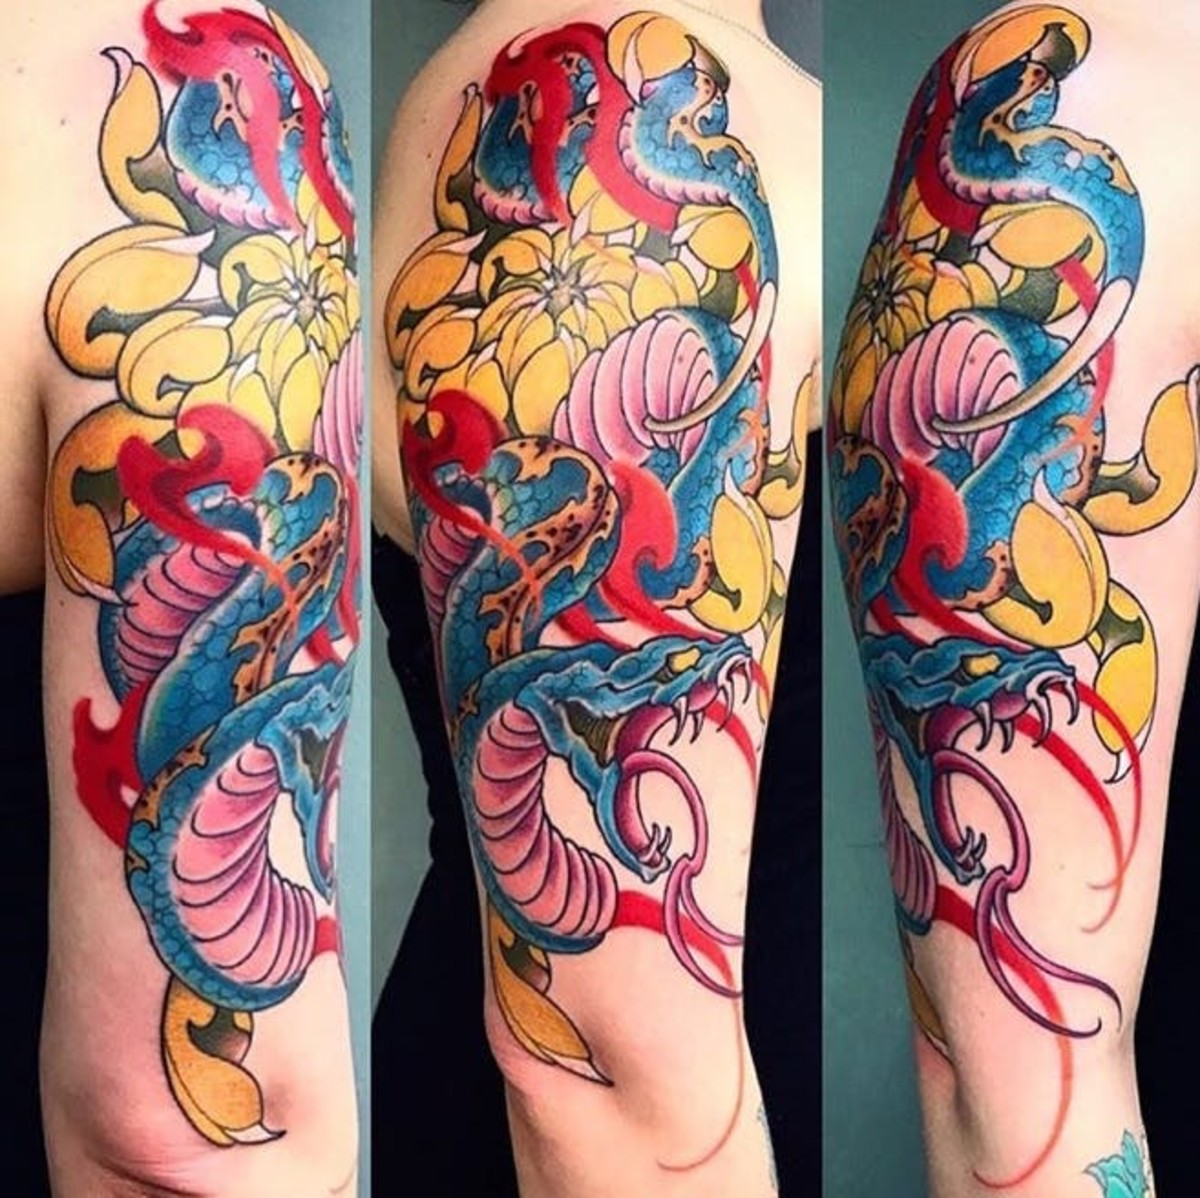 Blue serpent tattoo with kiku (Japanese Chrysanthemum), and flames